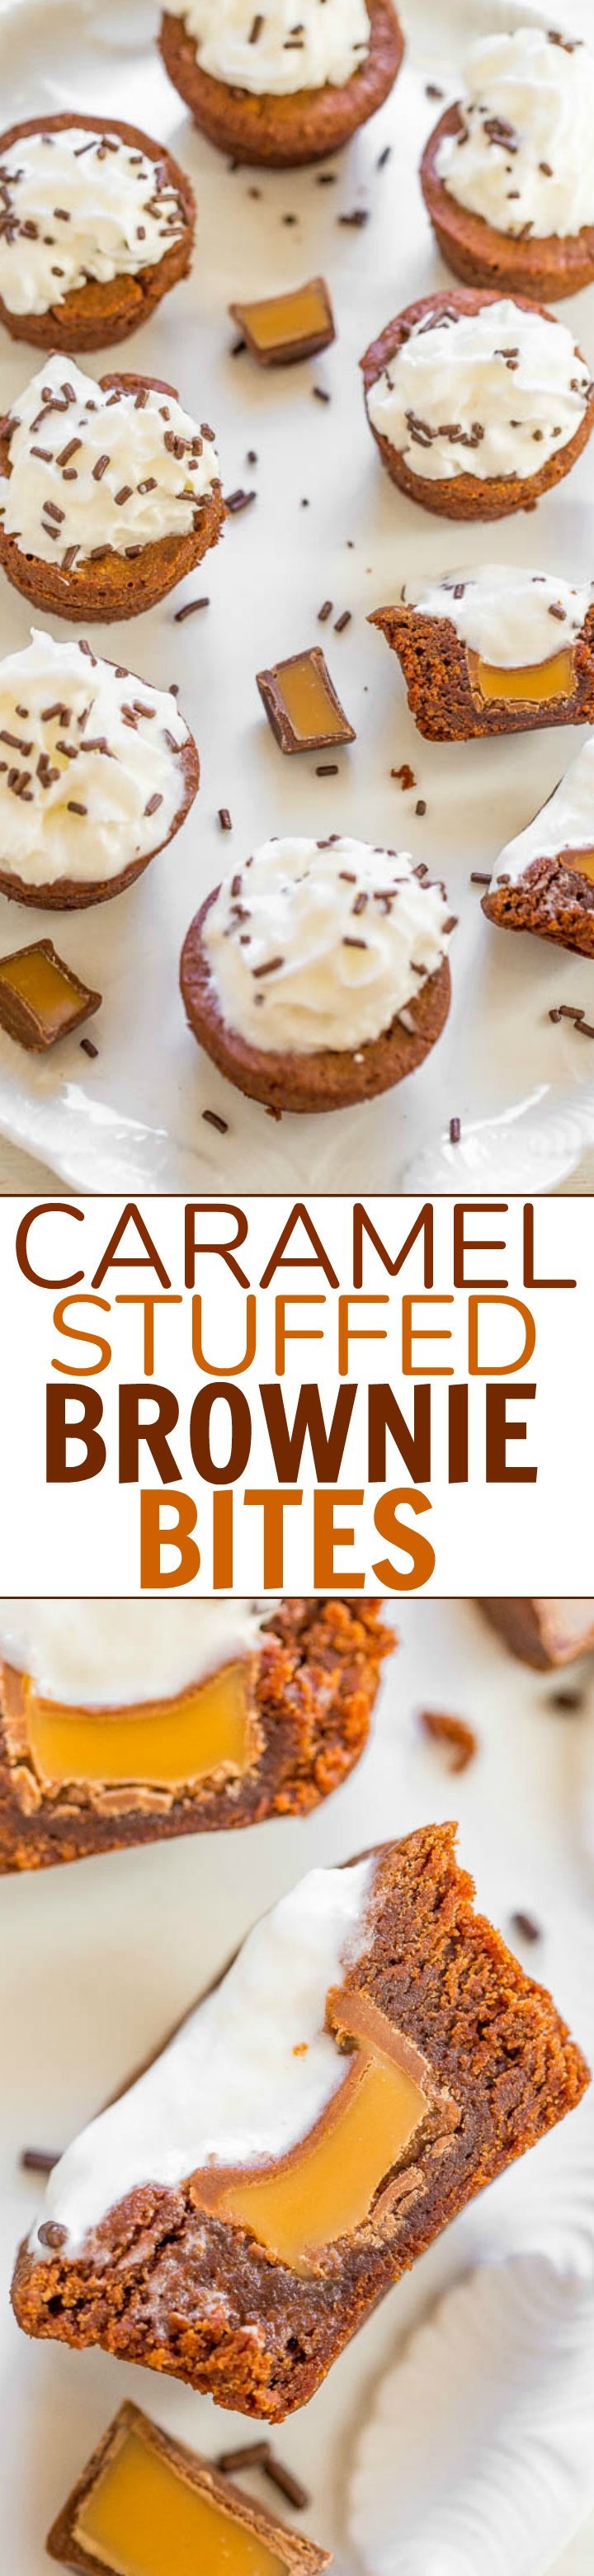 Caramel-Stuffed Brownie Bites — An EASY, no mixer recipe for homemade brownie bites stuffed with CARAMEL and topped with whipped cream and sprinkles!! Rich, FUDGY, decadent, and DELISH!!